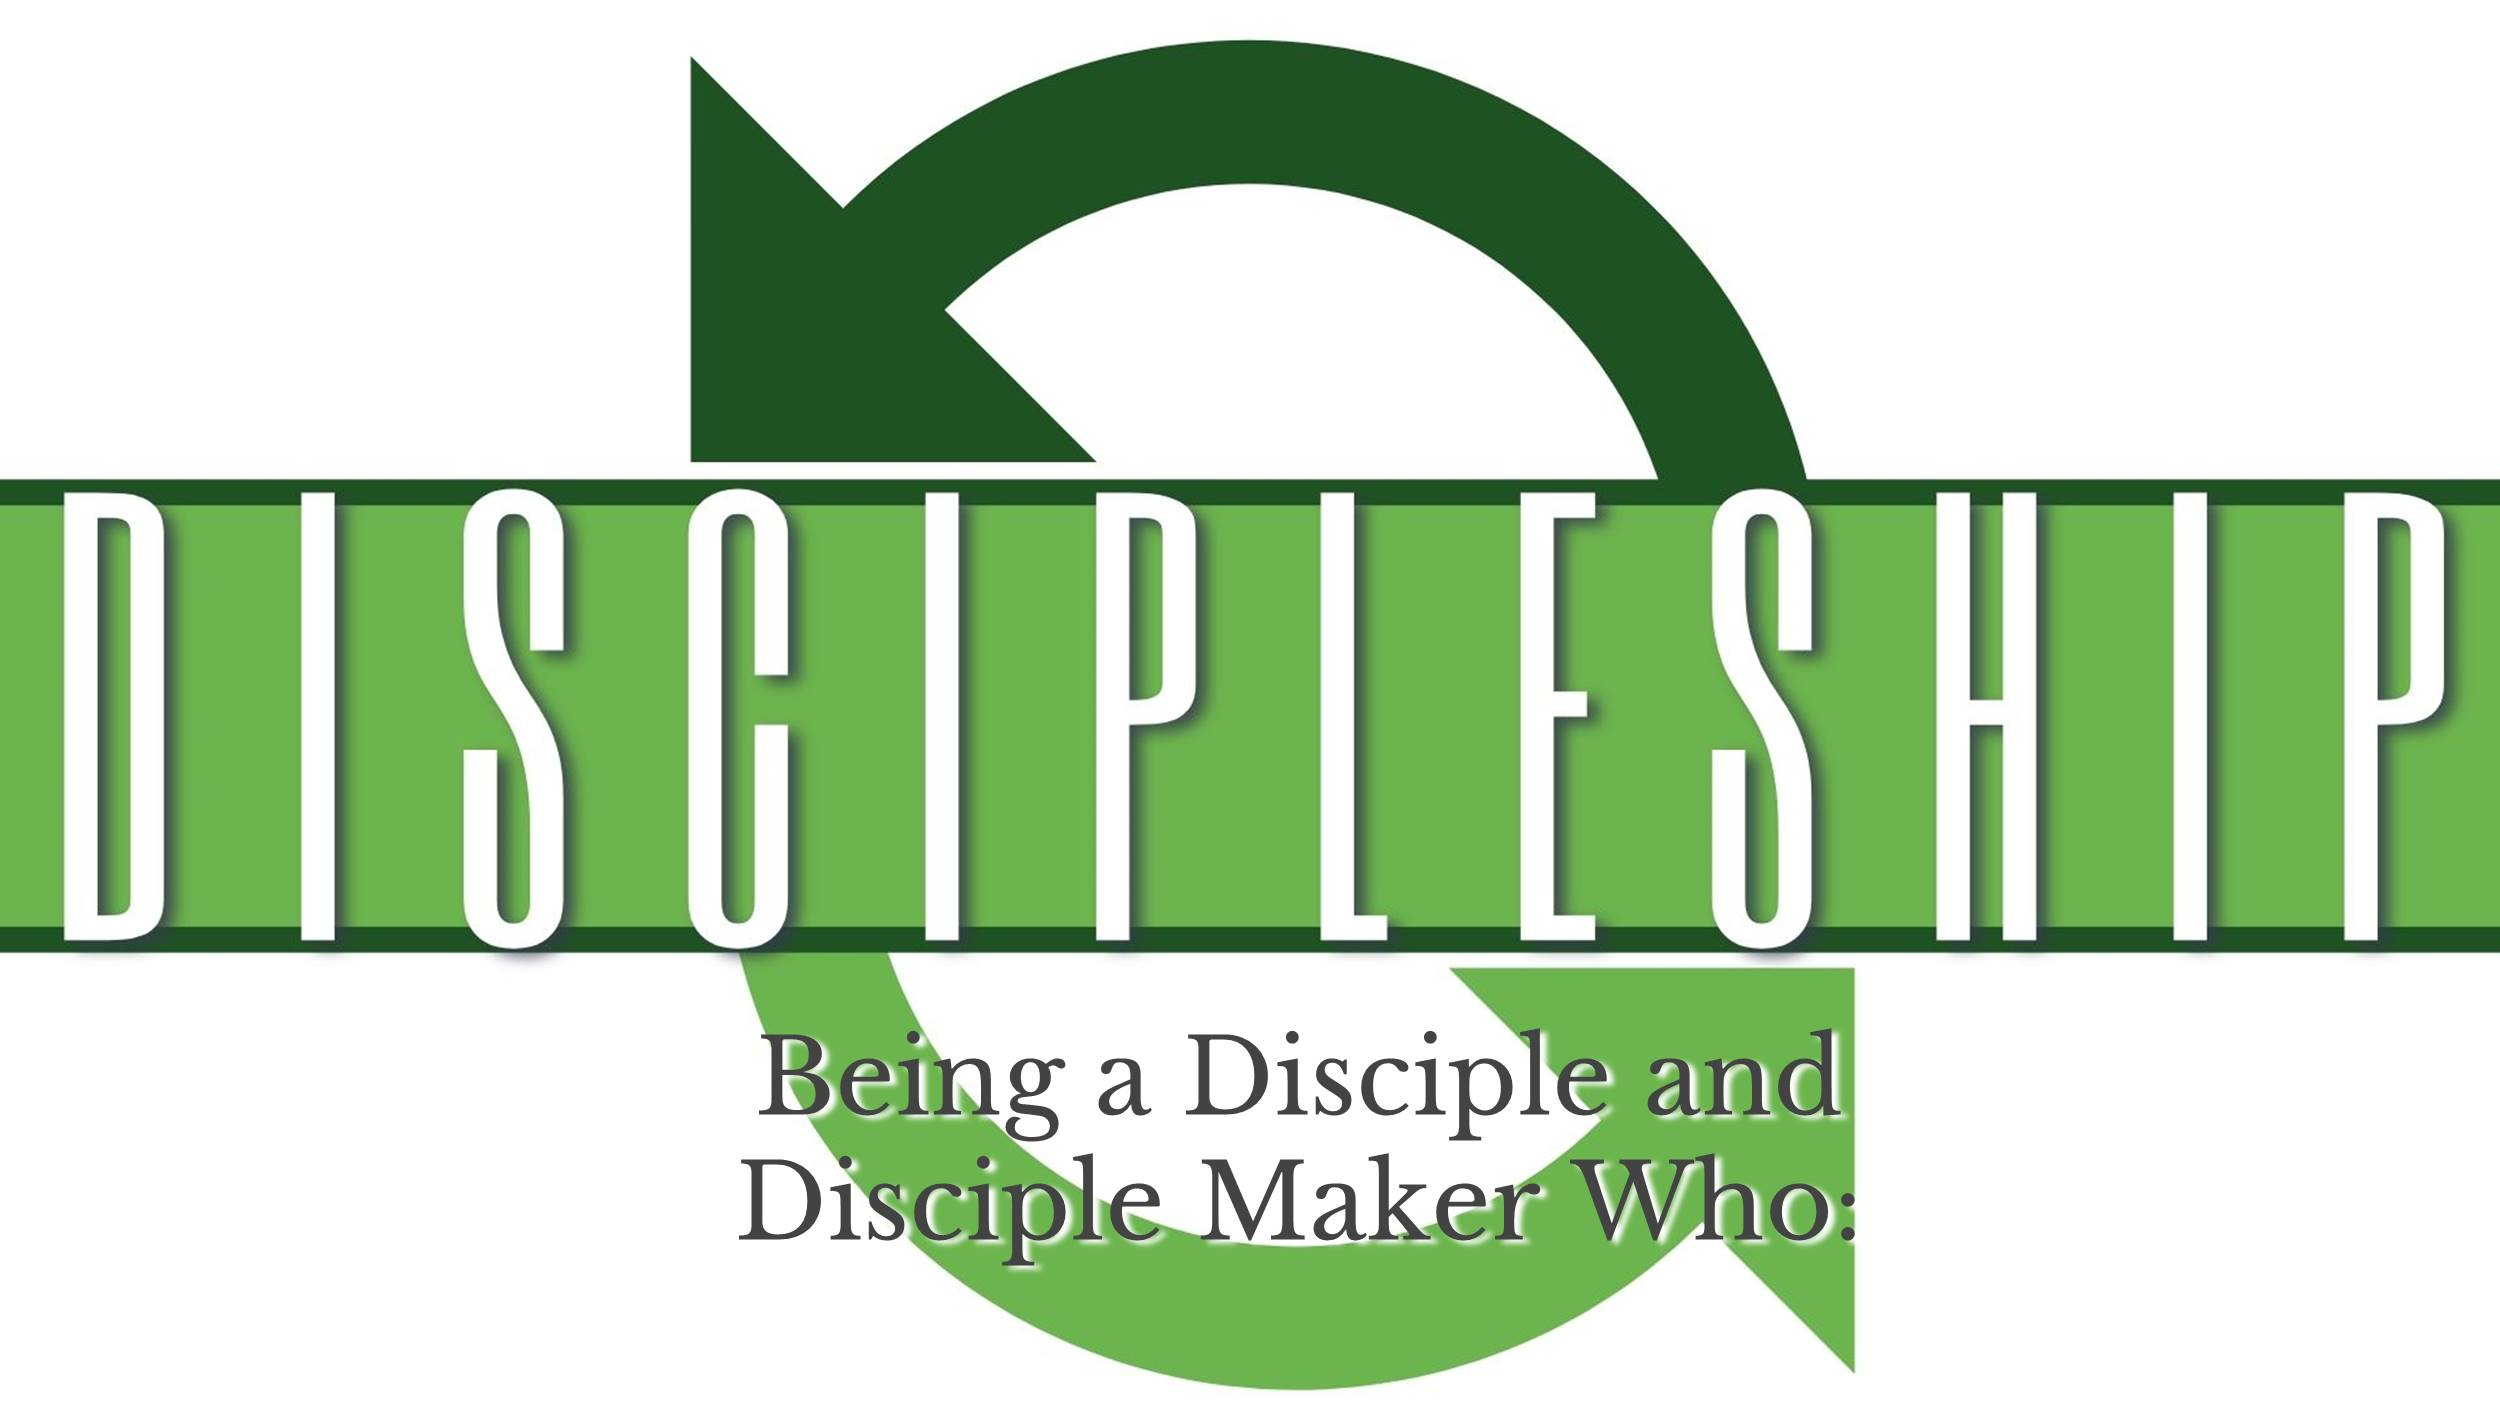 Being a Disciple and Disciple Maker Who: